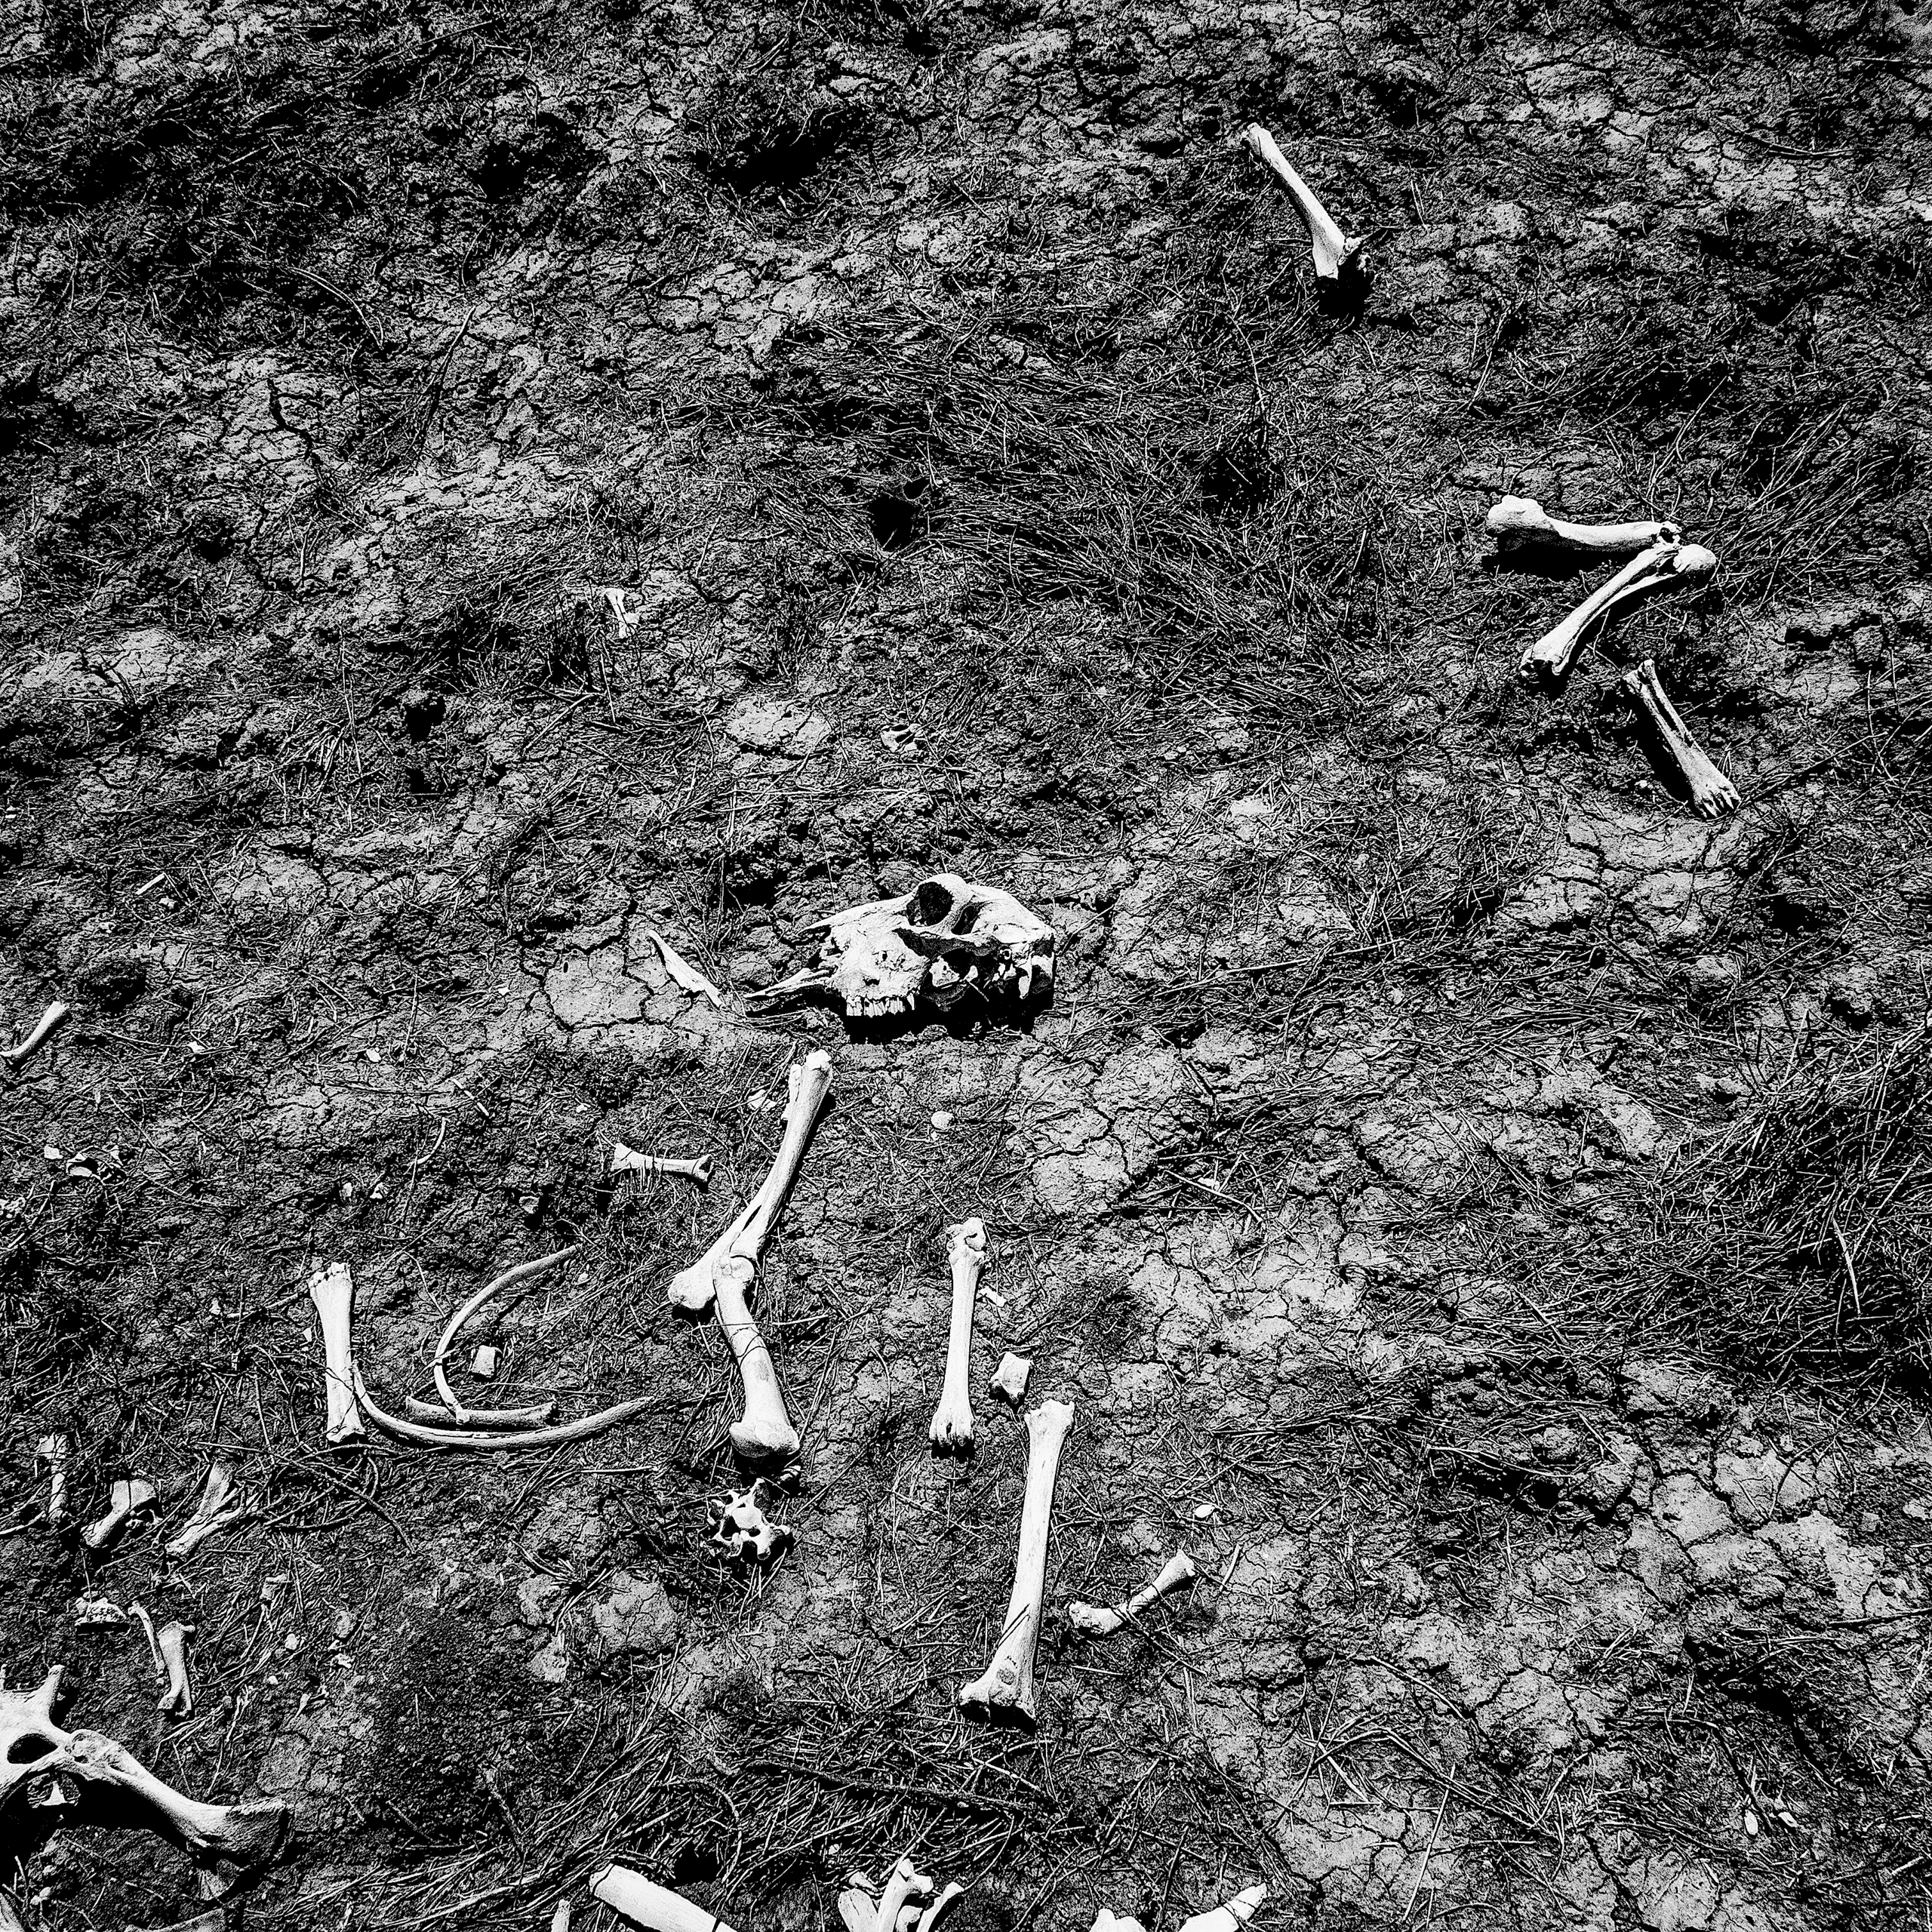 Sheep bones bake under a mid-summer sun near Alpaugh, CA.   Dought related agricultural losses in the Central Valley are expected to top $1.5 billion this year.